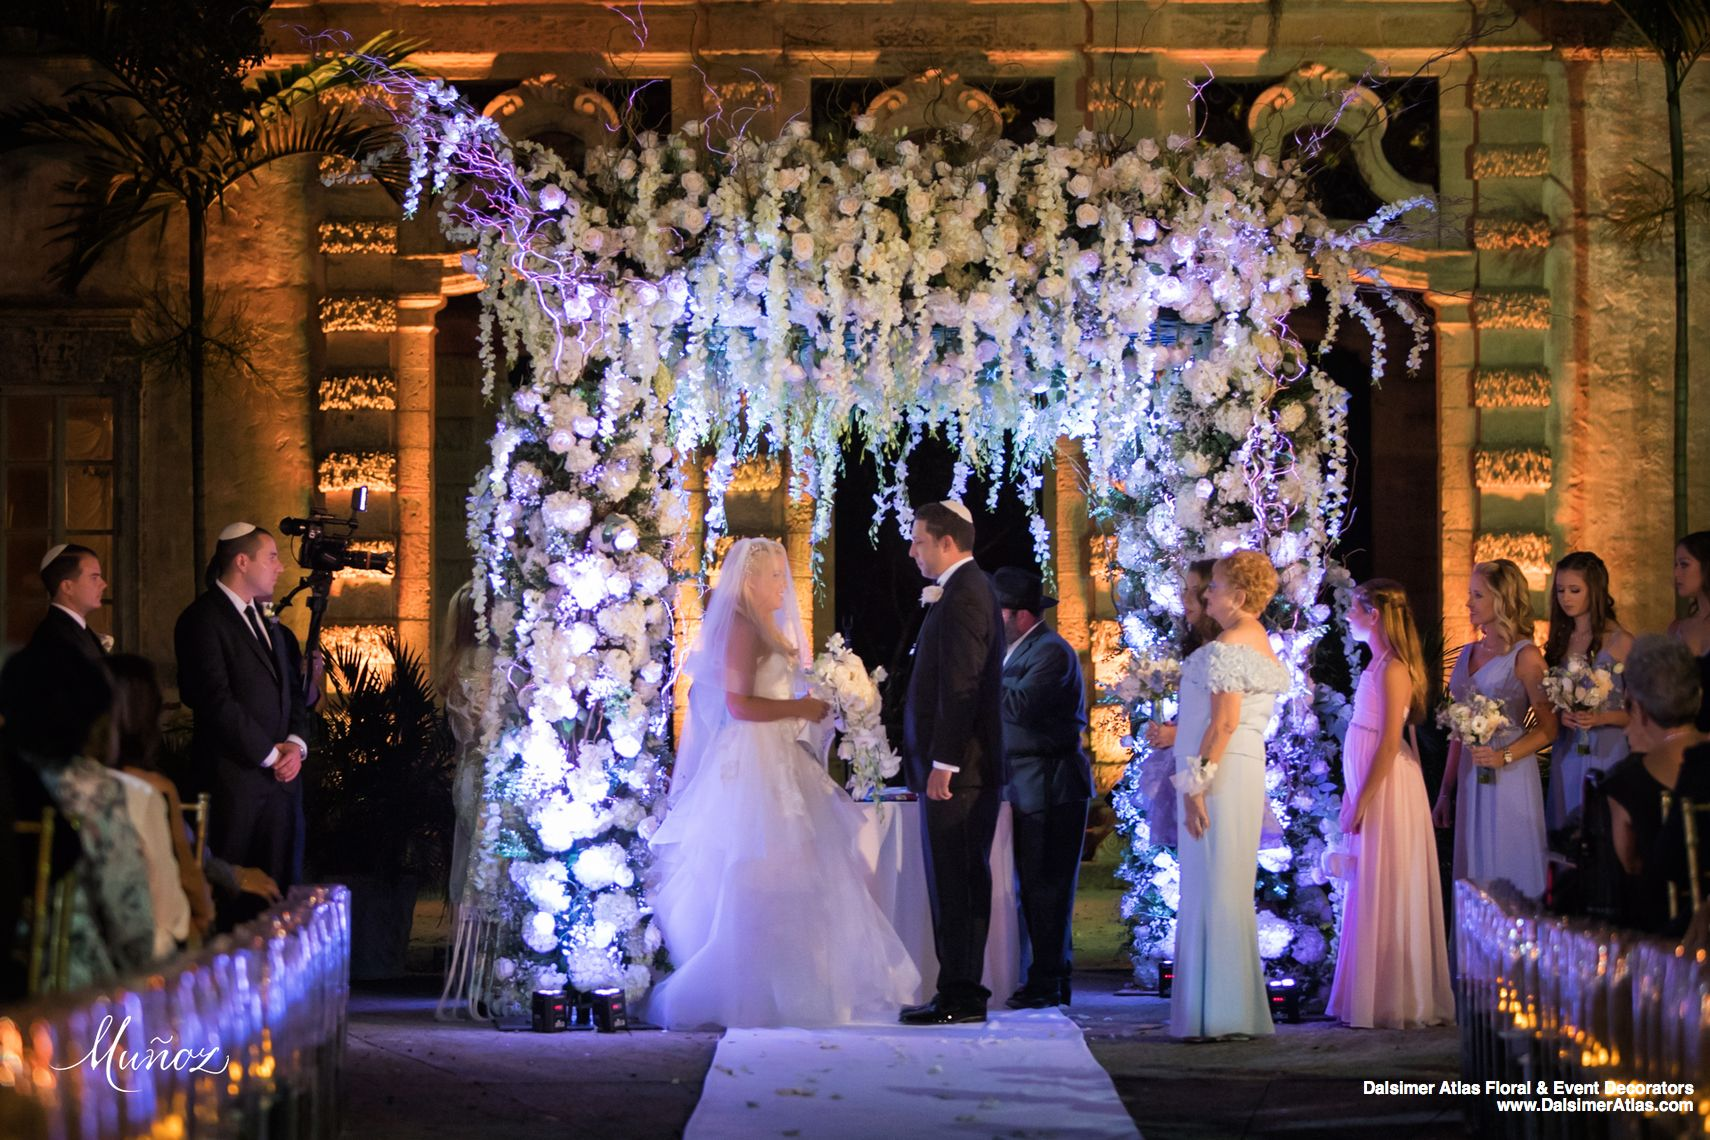 Wedding Florists Flowers Decorations Vizcaya Museum And Gardens Miami Florida Dalsimer Atlas 2